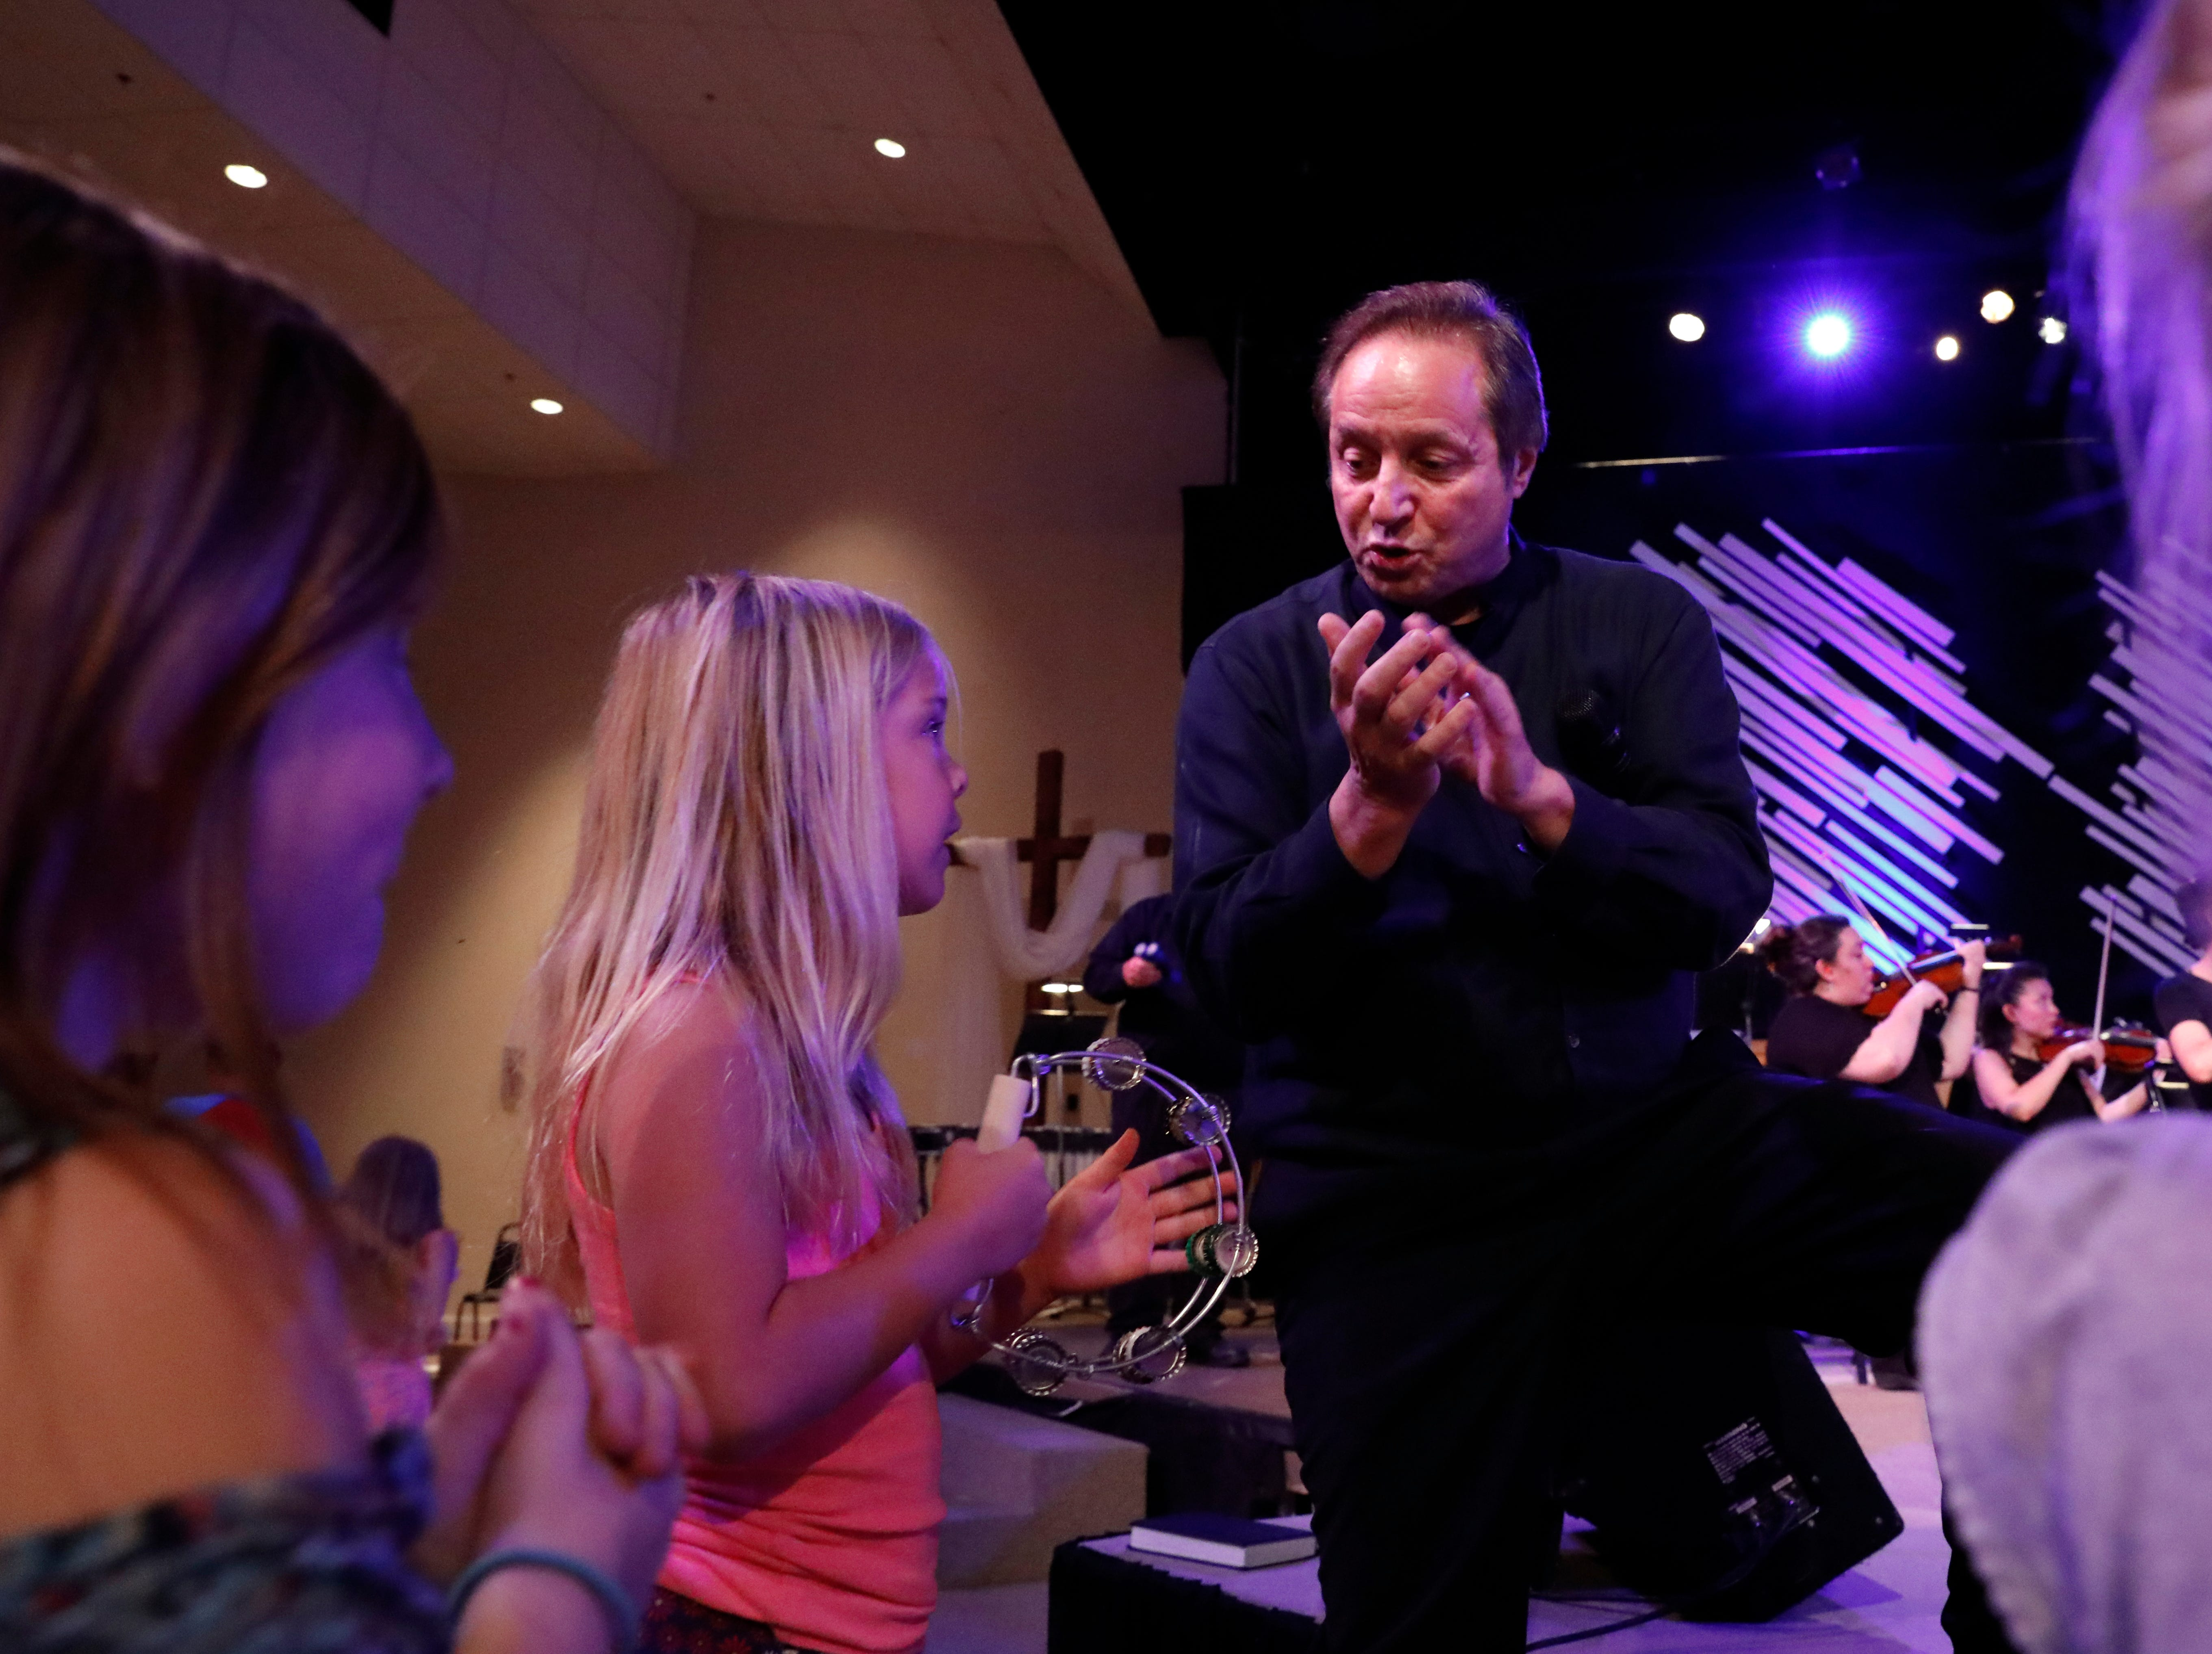 Lancaster Festival Orchestra conductor Gary Sheldon claps in time with children playing tambourines Thursday night, July 26, 2018, at Fairfield Christian Church in Lancaster.